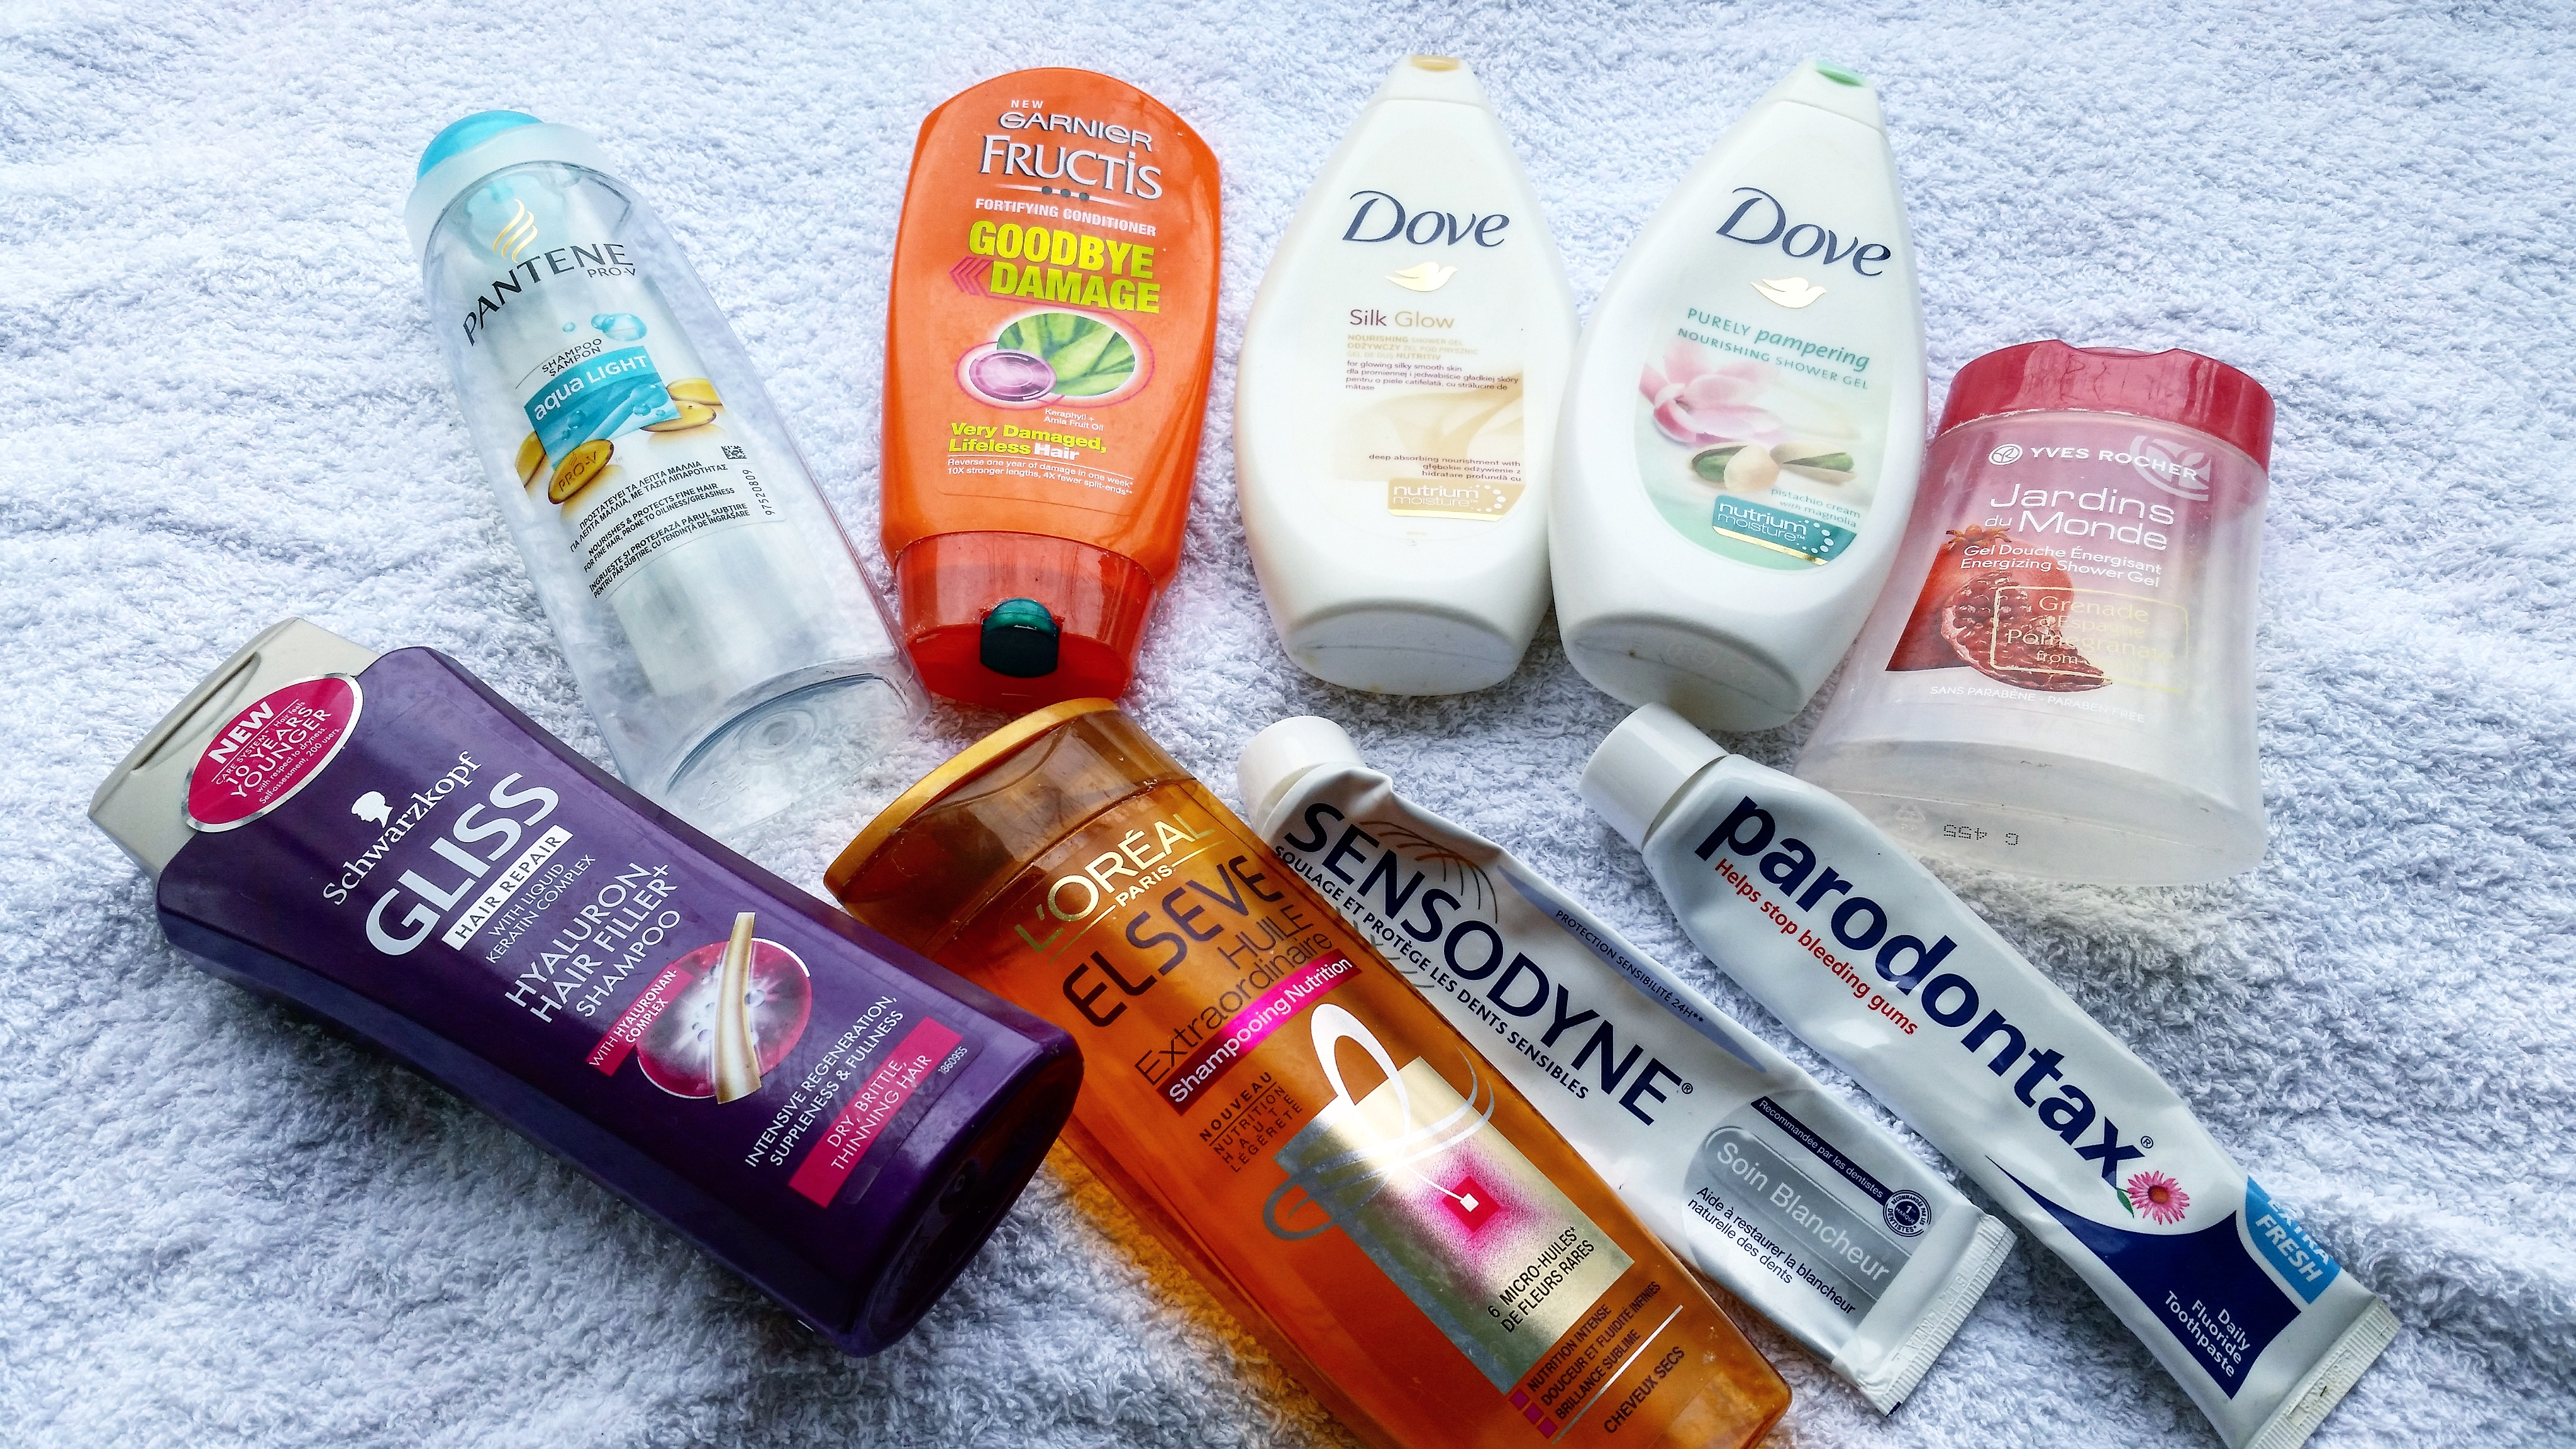 empties march  loreal dove gliss pantene garnier fructis sensodyne yves rocher - beautyandatwist